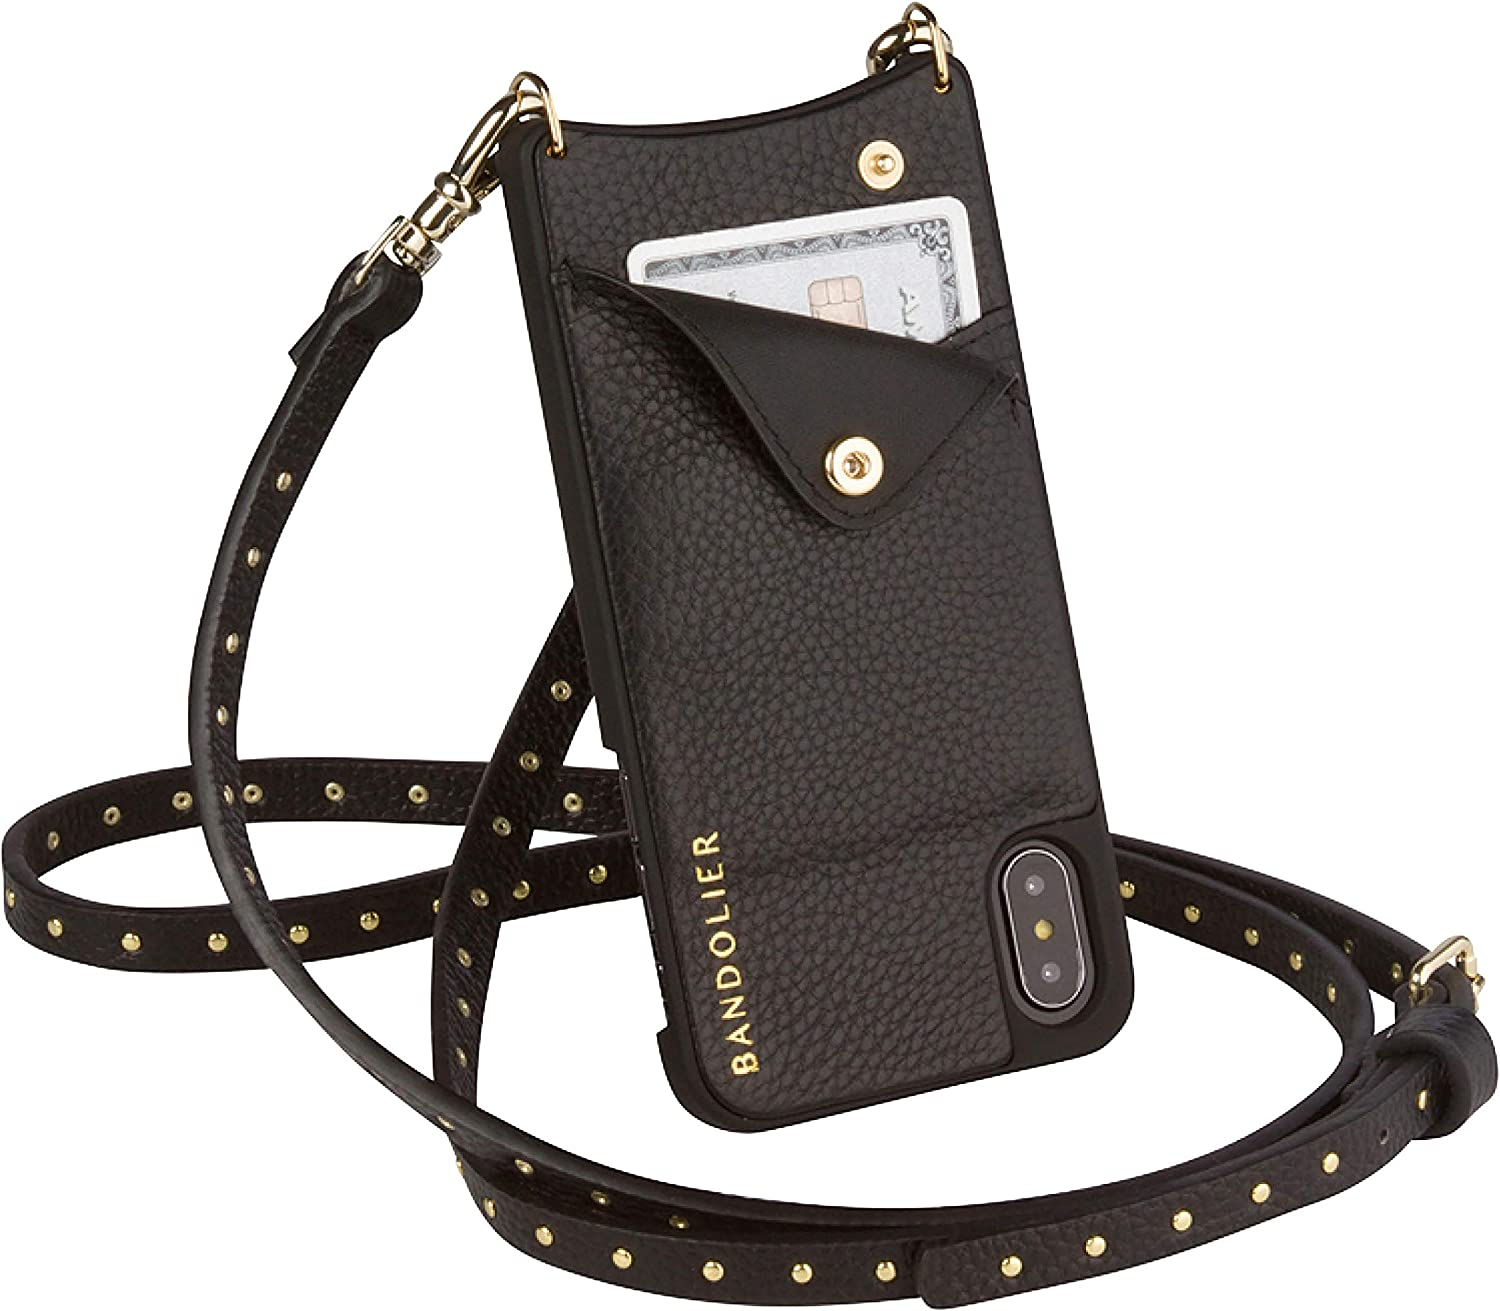 Bandolier Nicole Crossbody Phone Case and Wallet - Black Leather with Gold Detail - Compatible with iPhone 8 Plus, 7 Plus, 6 Plus, 6s Plus Only